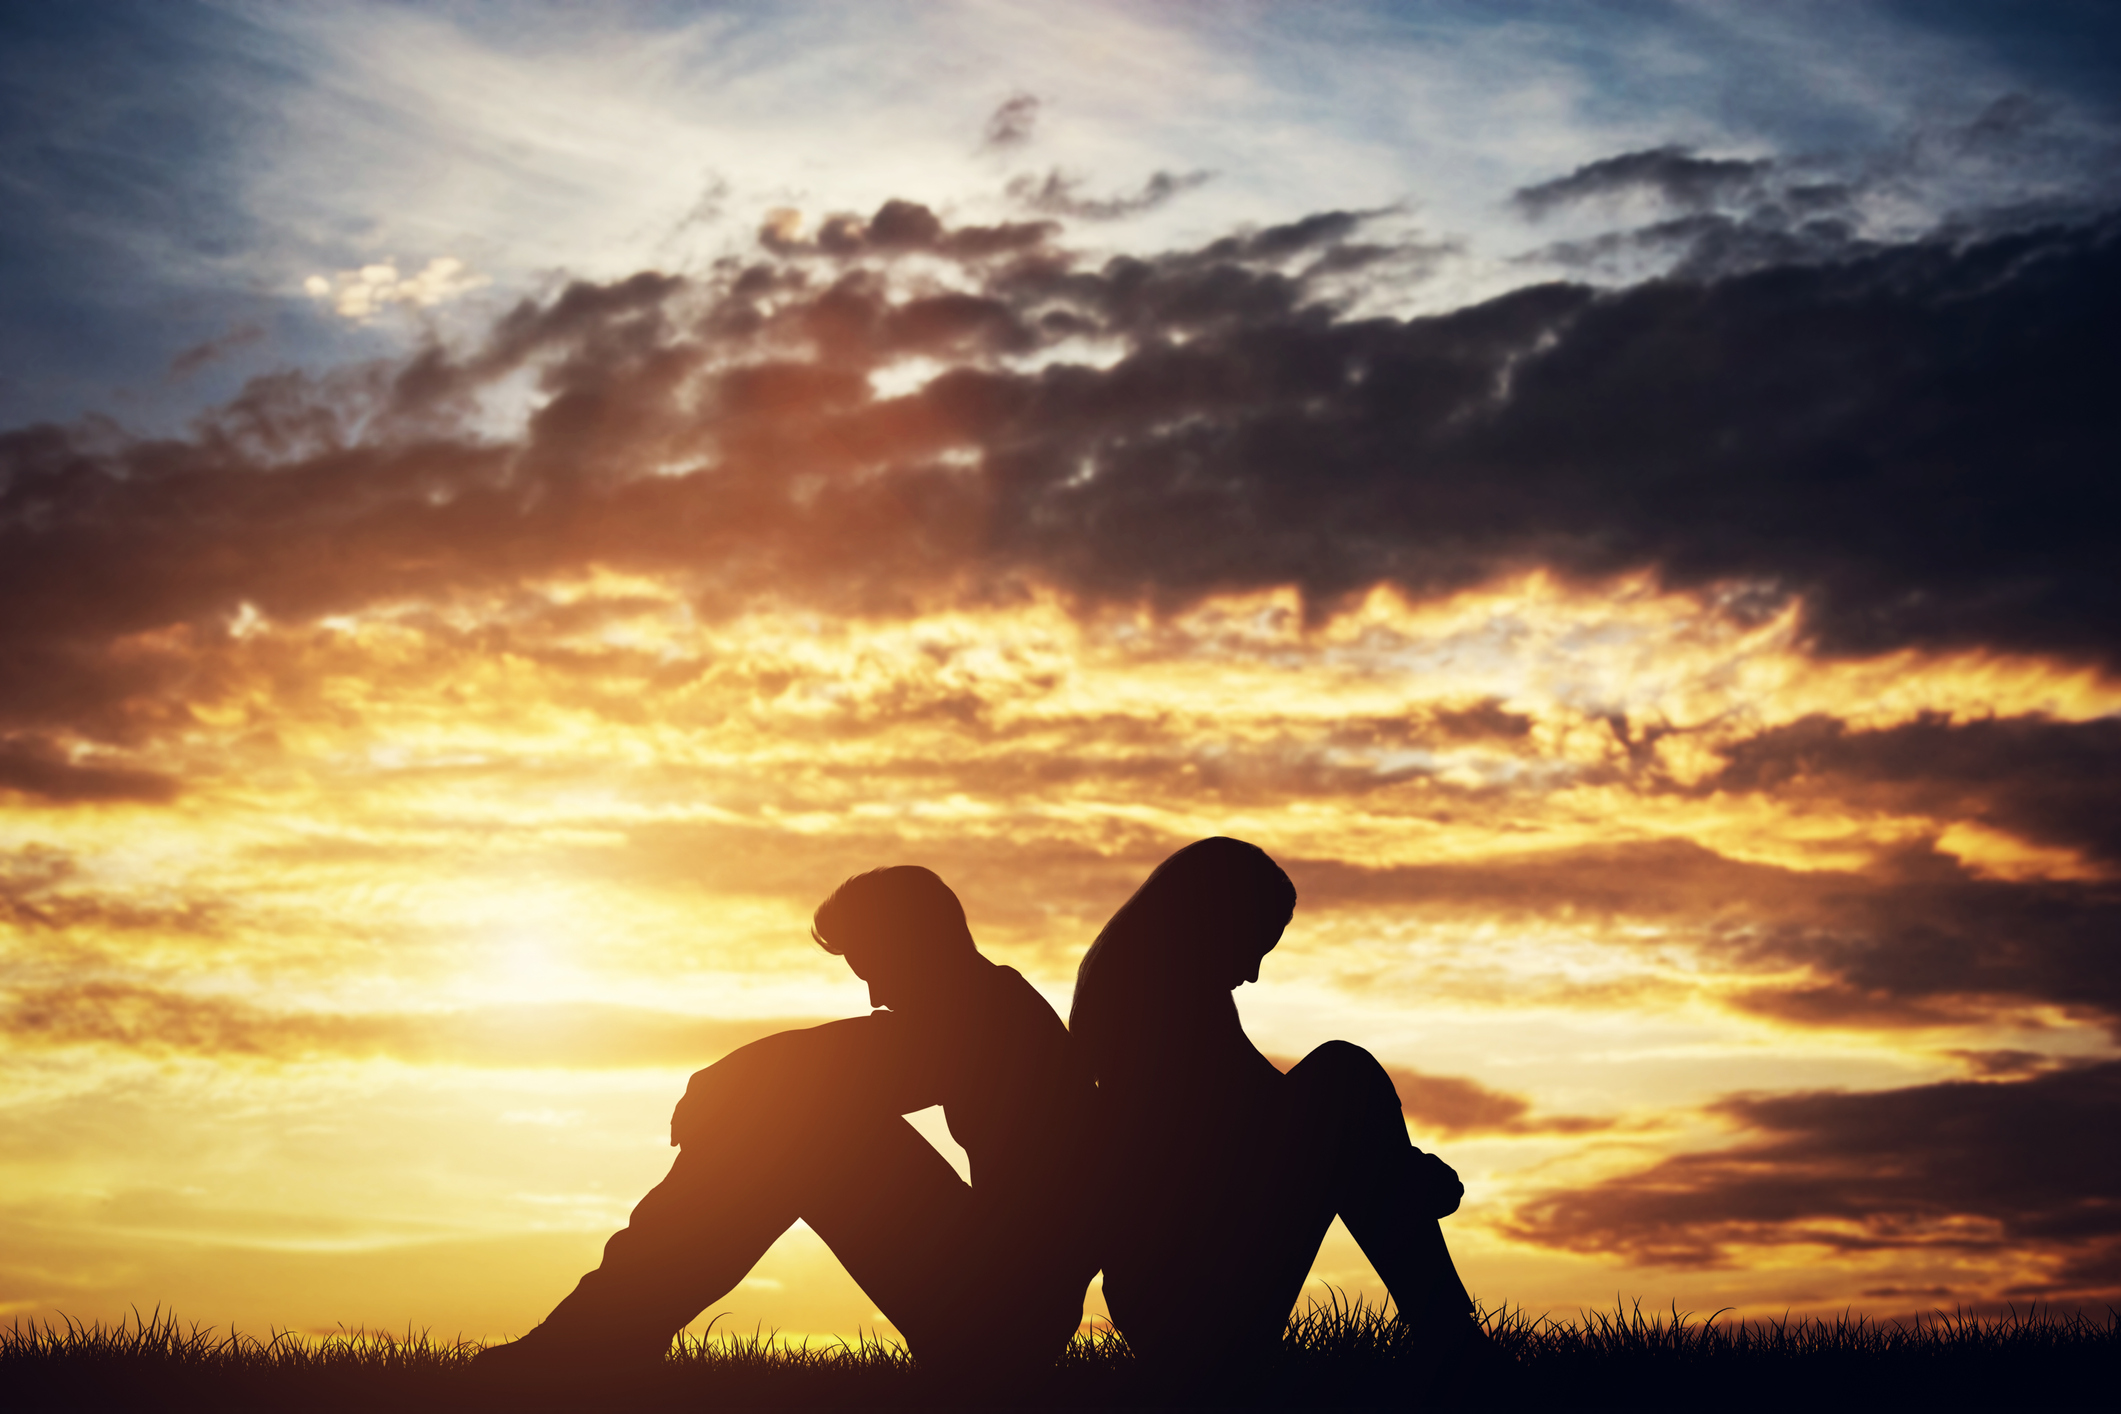 Couple in silhouette sitting back to back in an open field against a sunset.